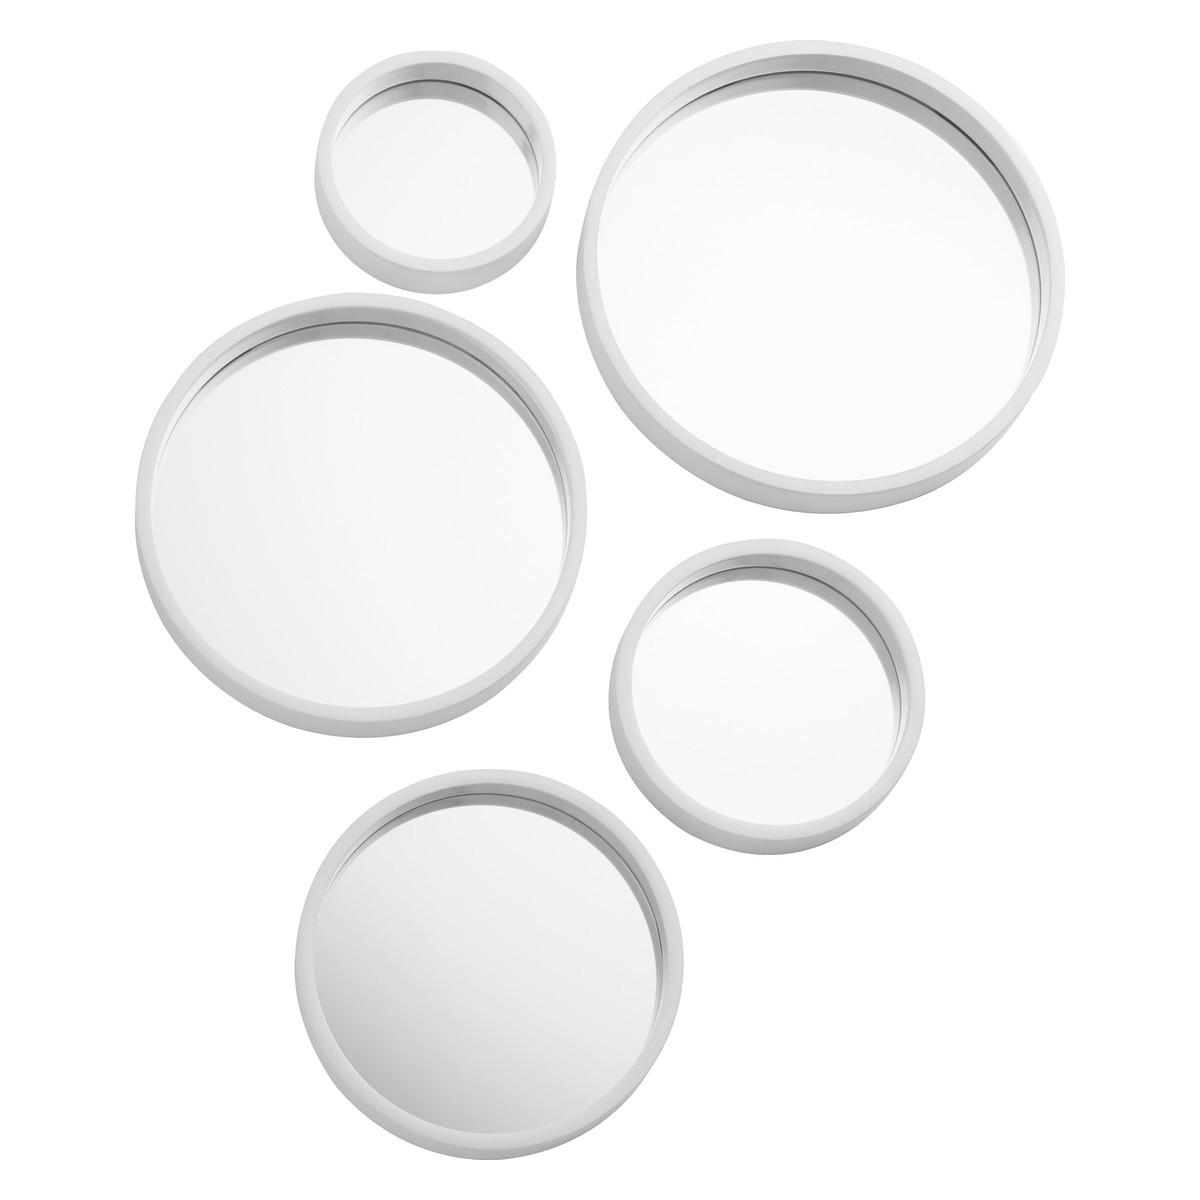 Mirror Mirror Set Of 5 White Round Mirrors | Buy Now At Habitat Uk With Regard To Round Mirrors (View 13 of 20)